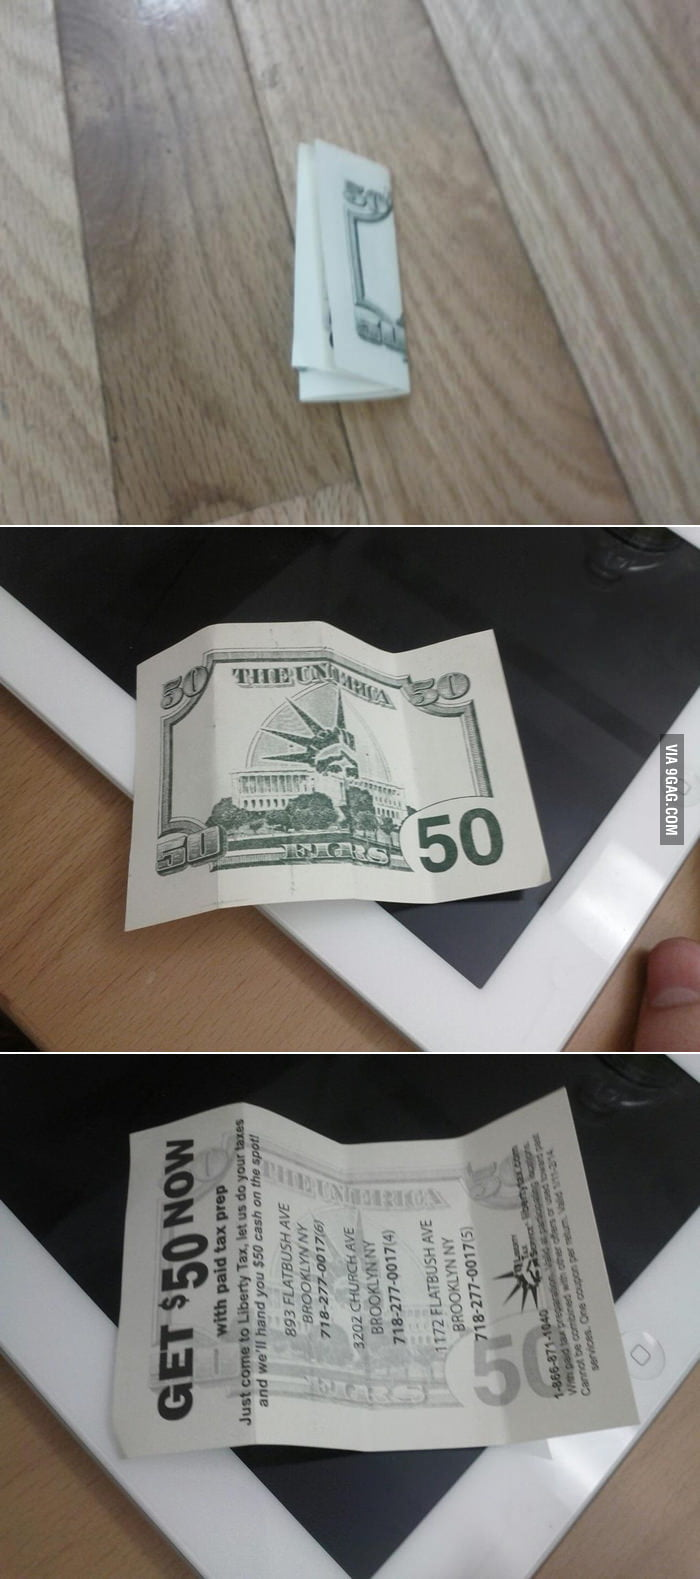 Yay! Found $50 on the floor... f**k you!